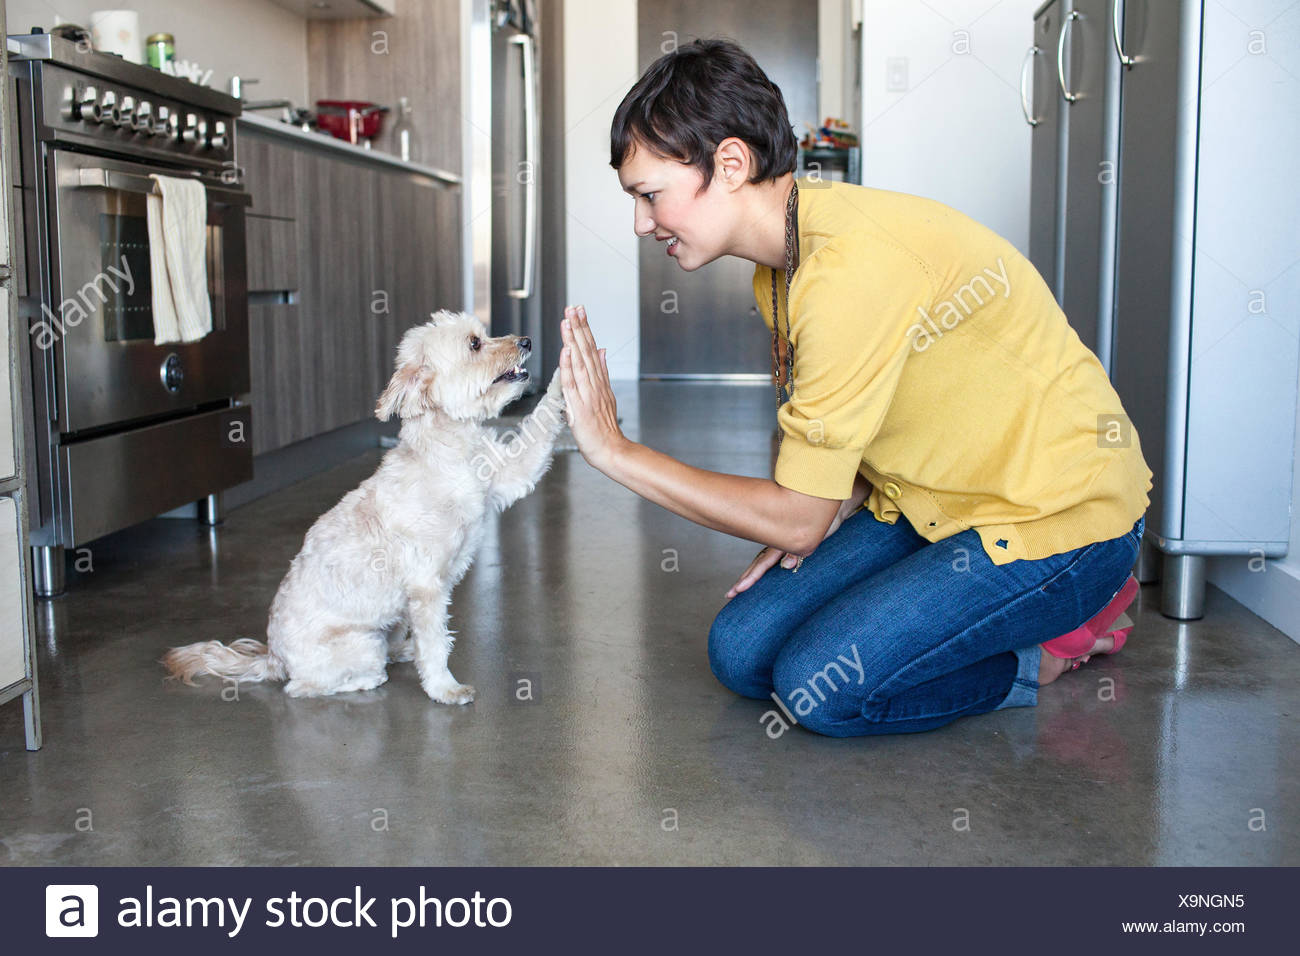 Young woman giving dog a high five in kitchen - Stock Image